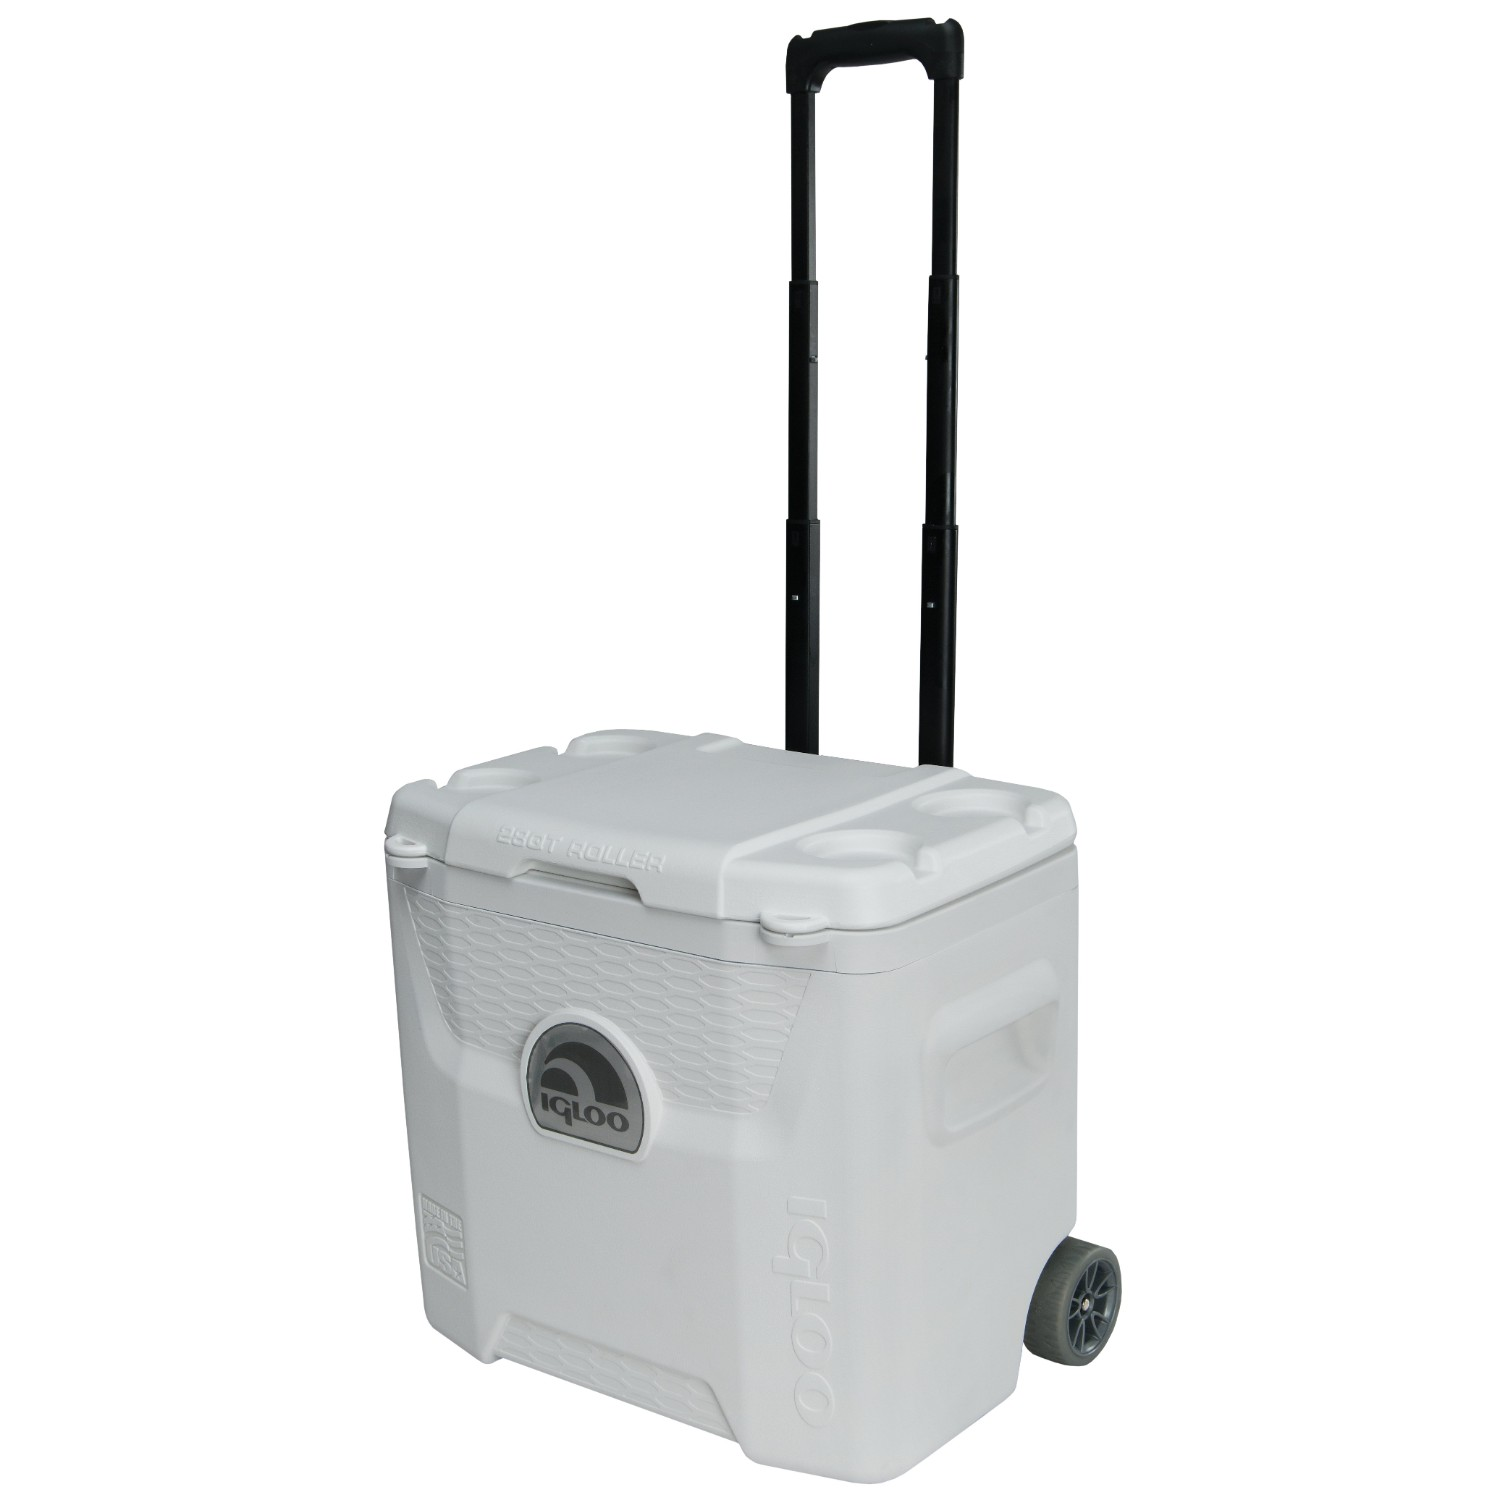 Igloo White 42 Can Marine Quantum Cooler with Wheels